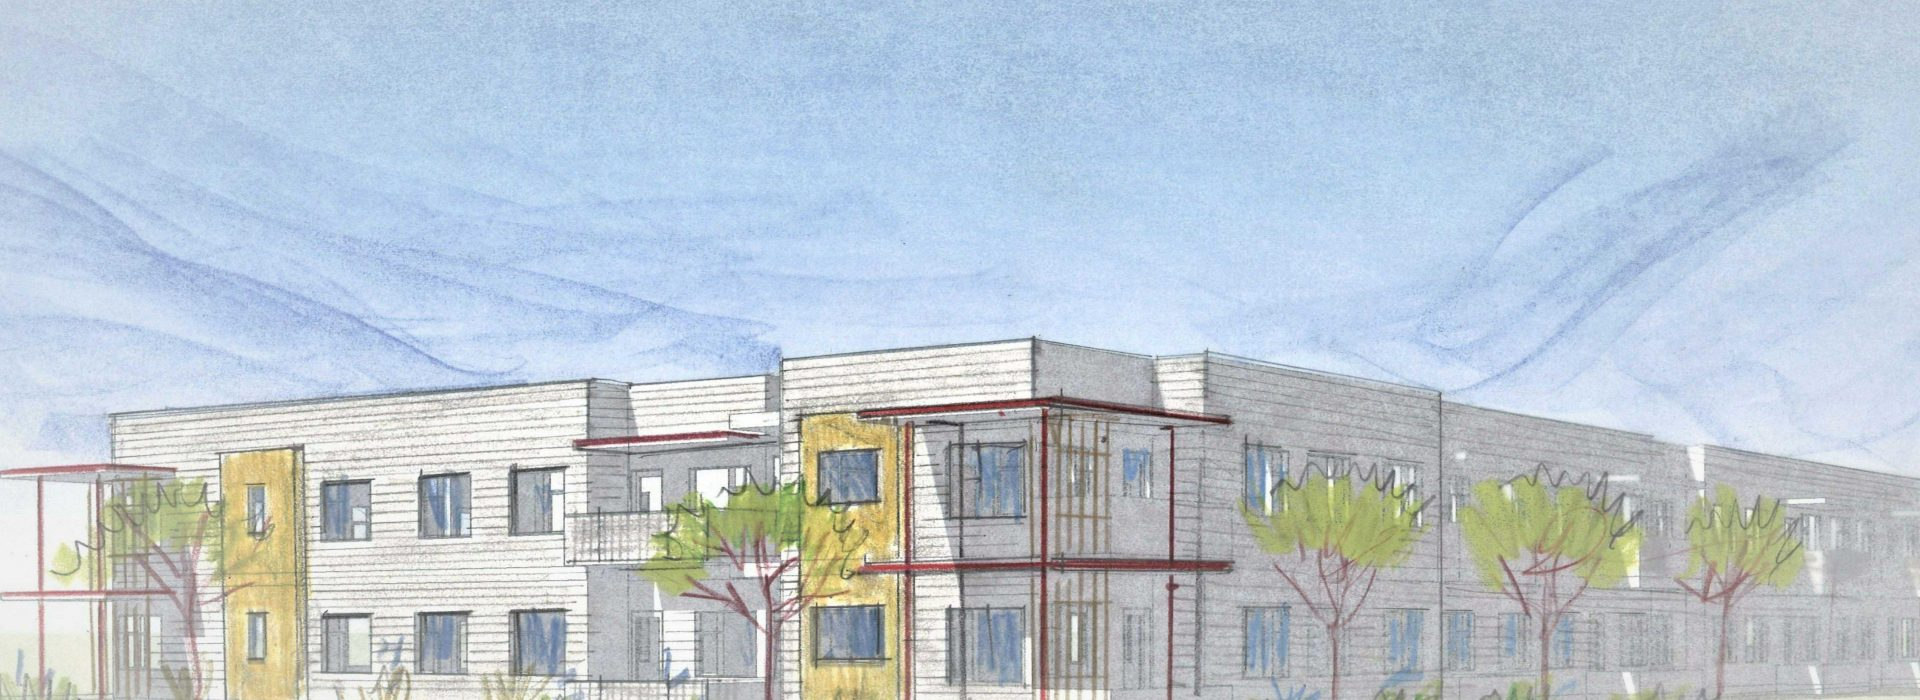 Orchard Commons Danco Communities Affordable Housing Project